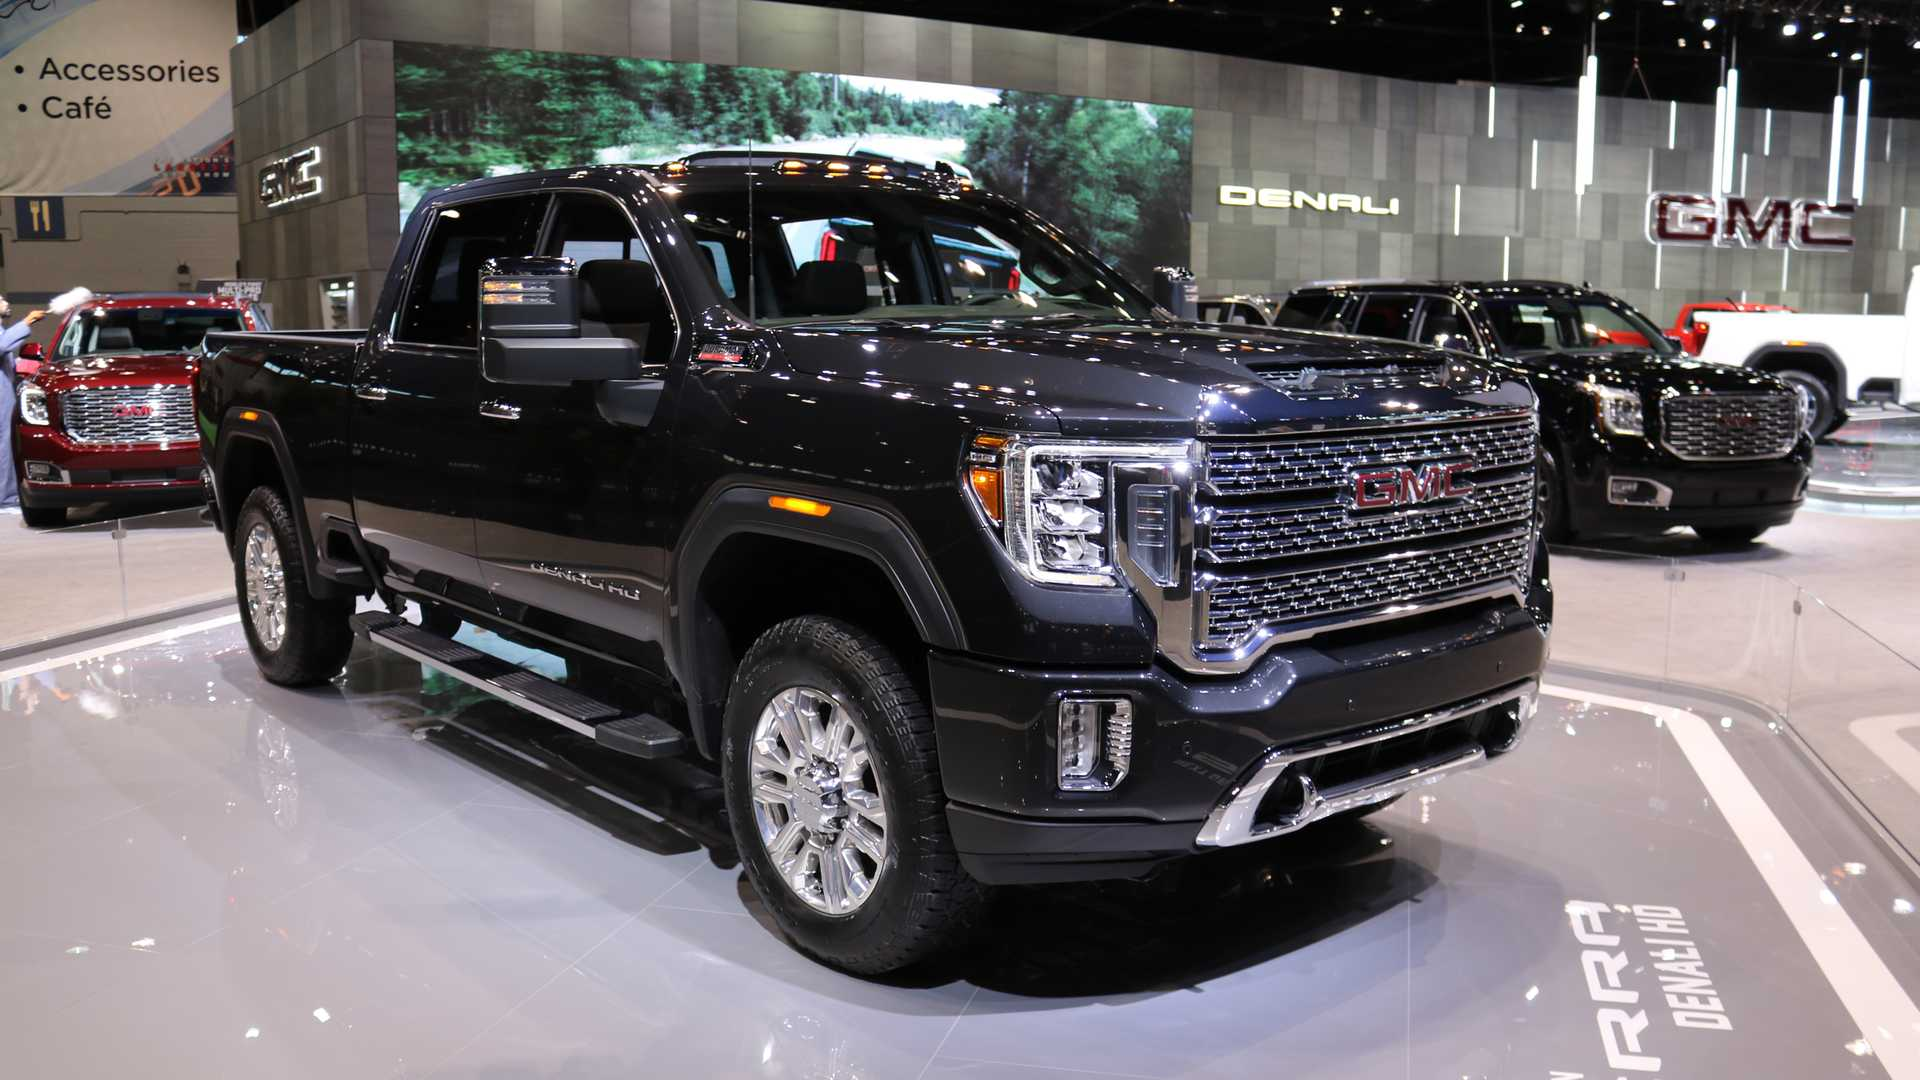 29 All New Gmc Sierra 2020 Price Rumors